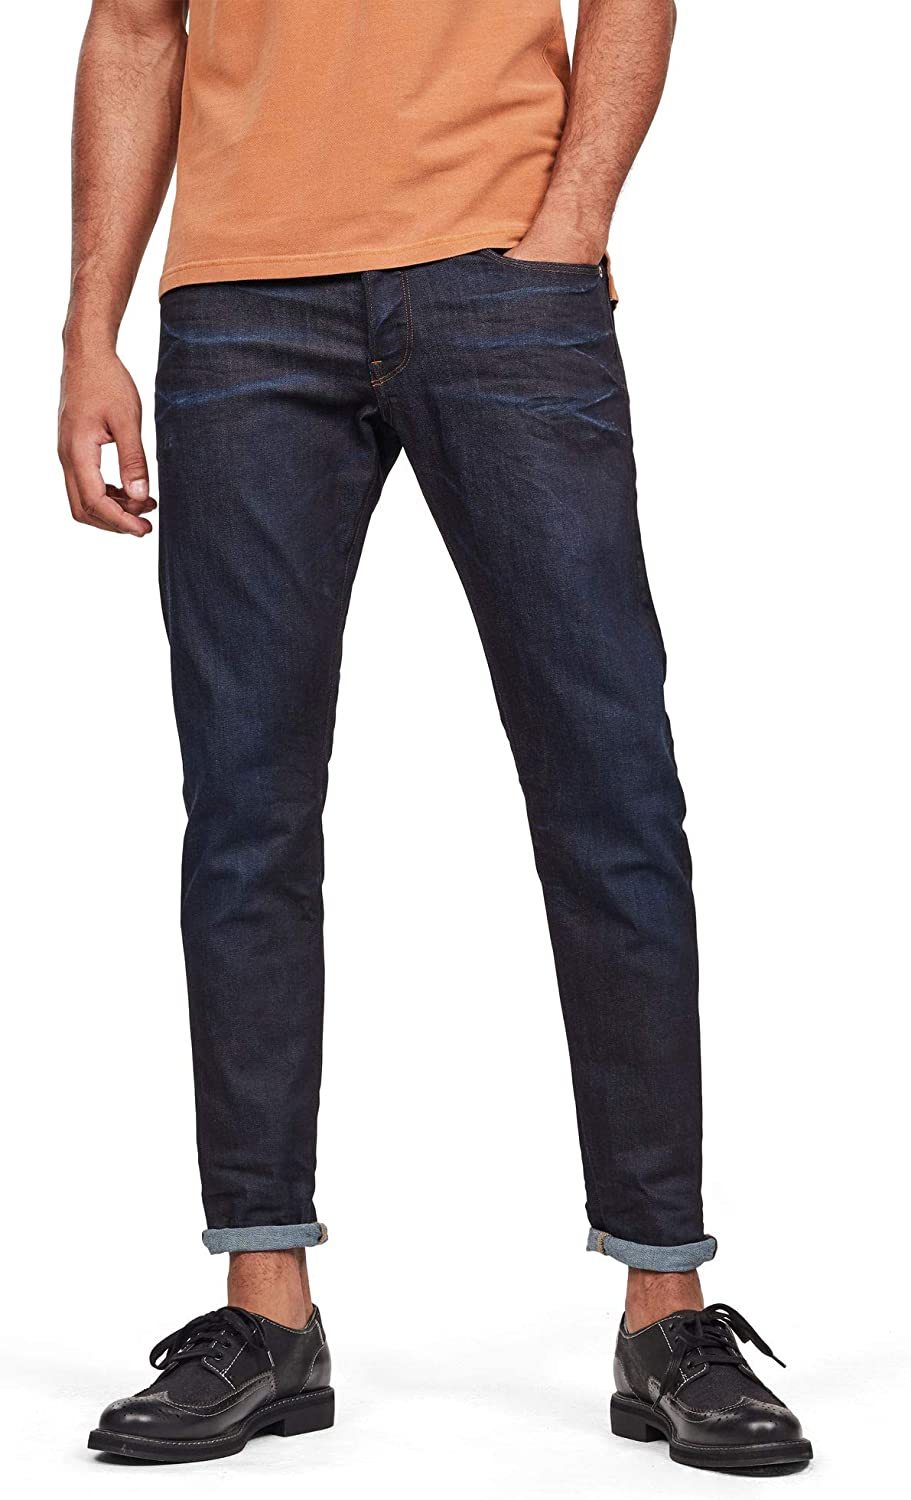 great prices new collection wholesale online G-Star Raw Men's 3301 Tapered Fit Pant in Visor Stretch Denim Dk Aged